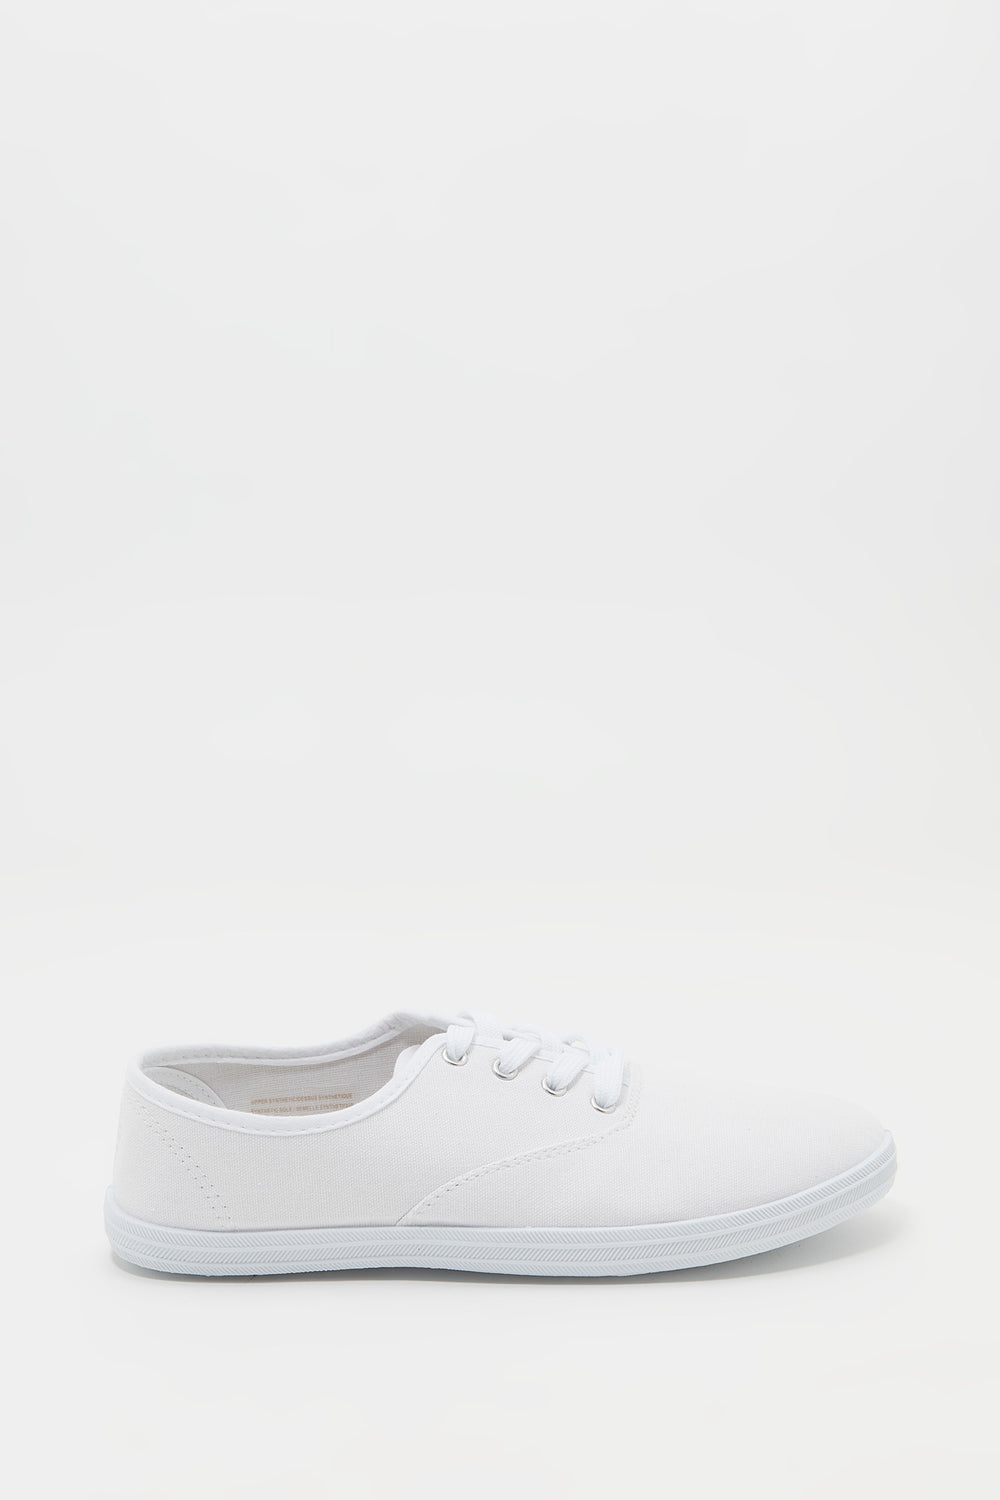 Classic Lace Up Tennis Shoe White